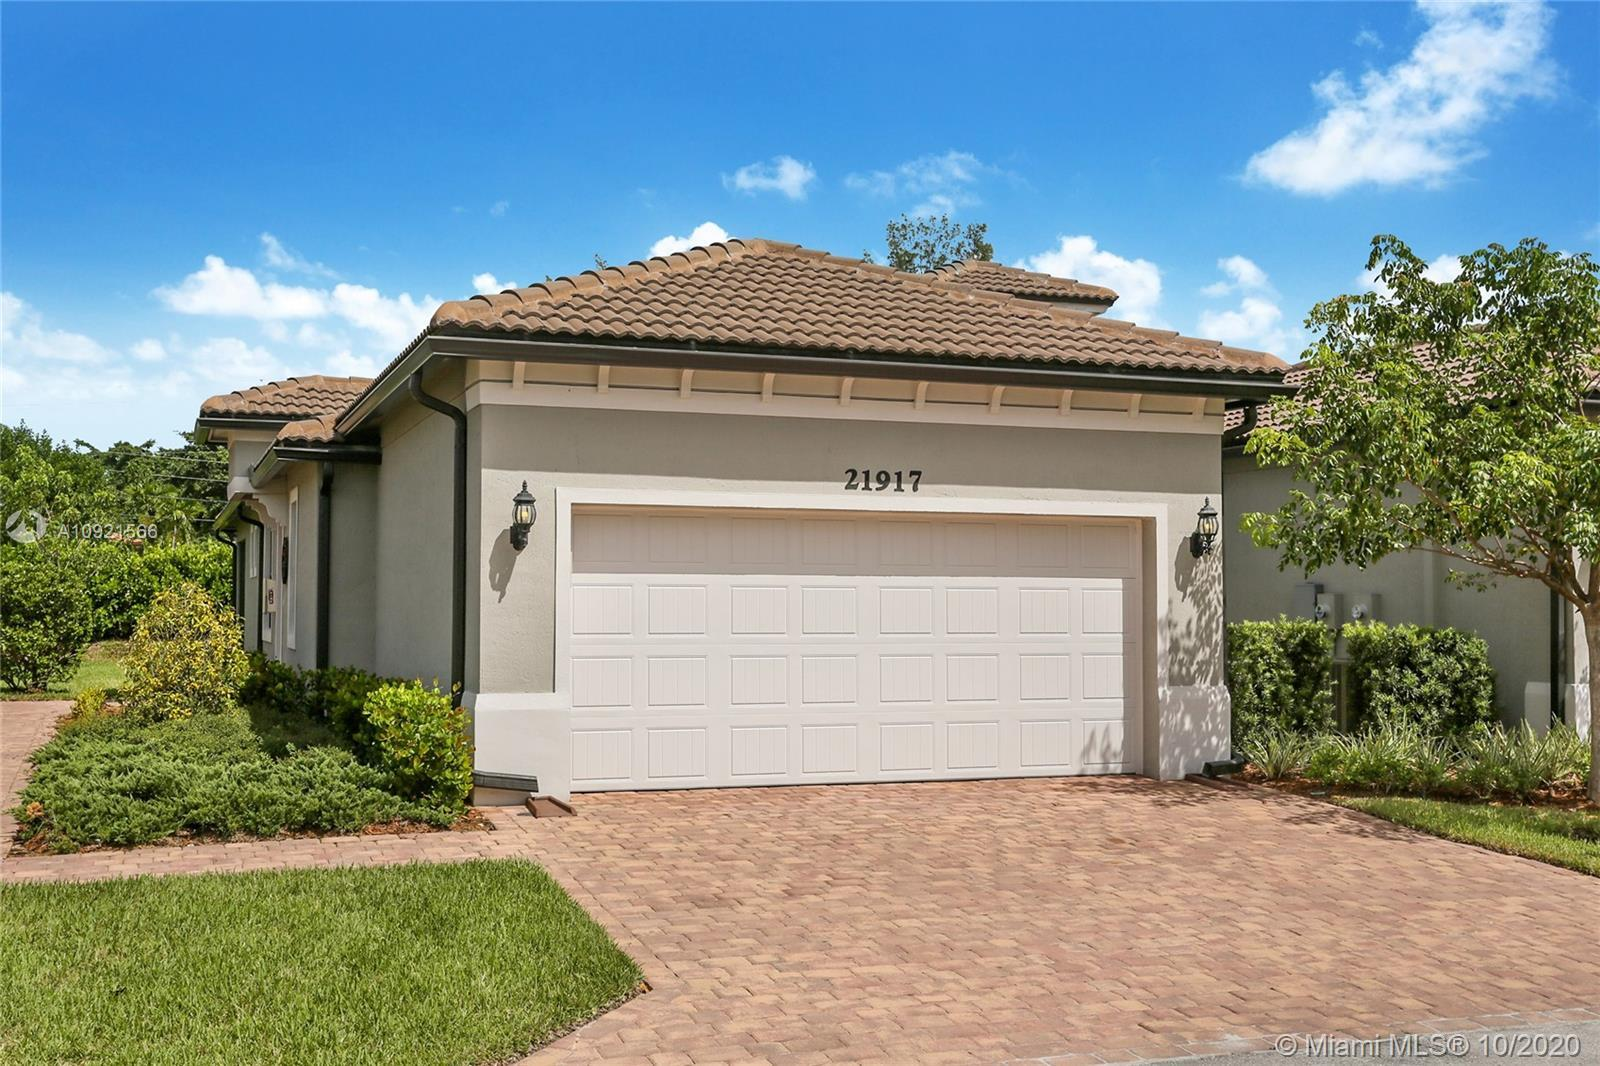 NEW CONSTRUCTION* RESALE in BOCA FLORES* Pulte Homes. Located in CENTRAL BOCA, a private guard gated